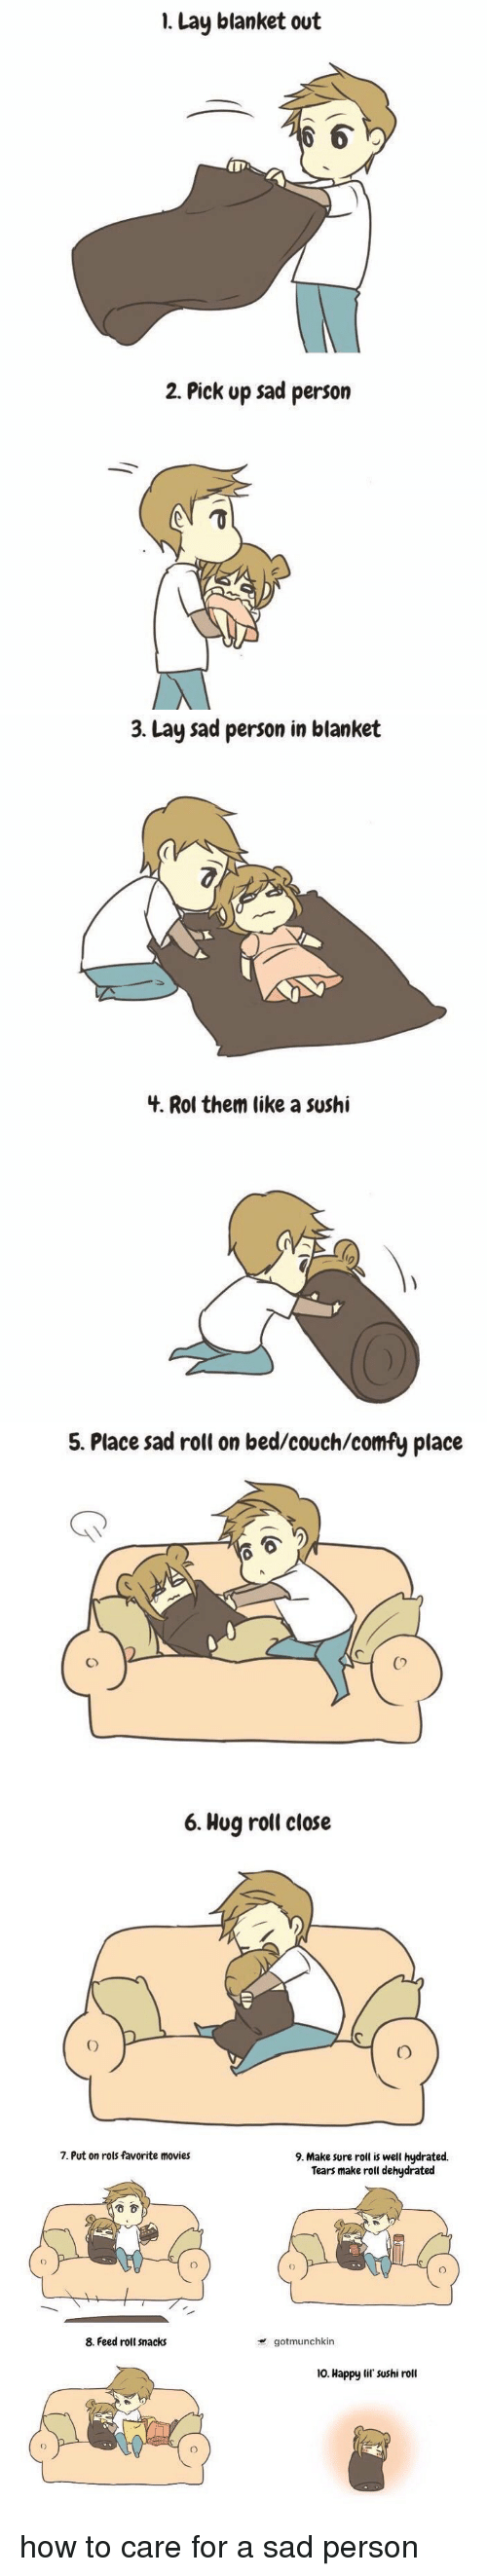 1 Lay Blanket Out OD 2 Pick Up Sad Person 3 Lay Sad Person in Blanket 4 Rol Them Like a Sushi 5 Place Sad Roll on Bedcouchcomfy Place 6 Hug Roll Close 7 Put on Rols Favorite Movies 8 Feed Roll Snacks 9 Make Sure Roll Is Well Hydrated Tears Make Roll Dehydrated Gotmunchkin No Happy Lil Sushi Roll How to Care for a Sad Person | Lay's Meme on ME.ME